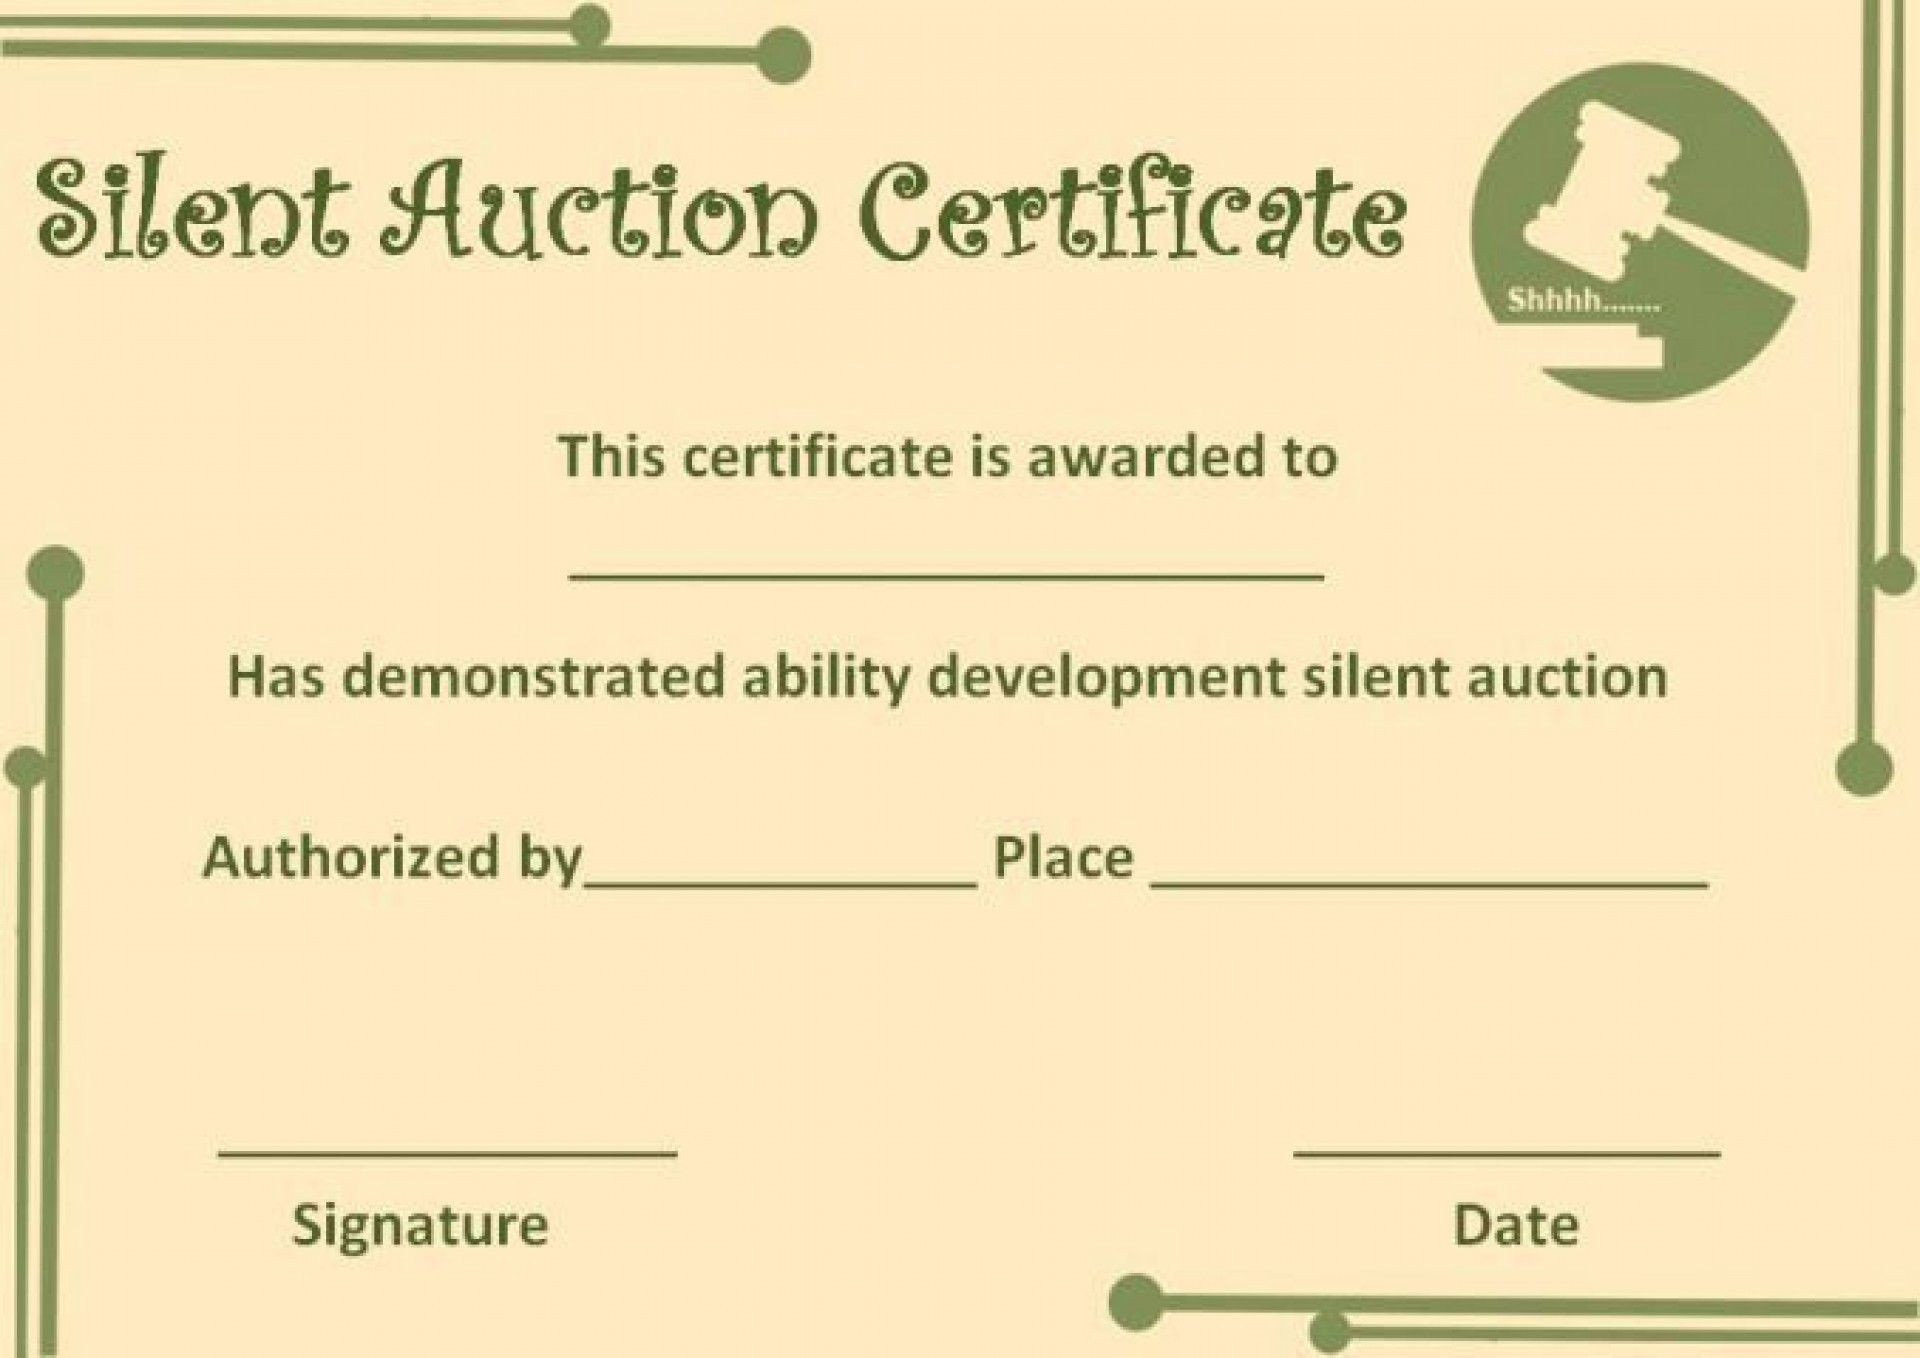 009 Astounding Free Silent Auction Gift Certificate Template Design 1920